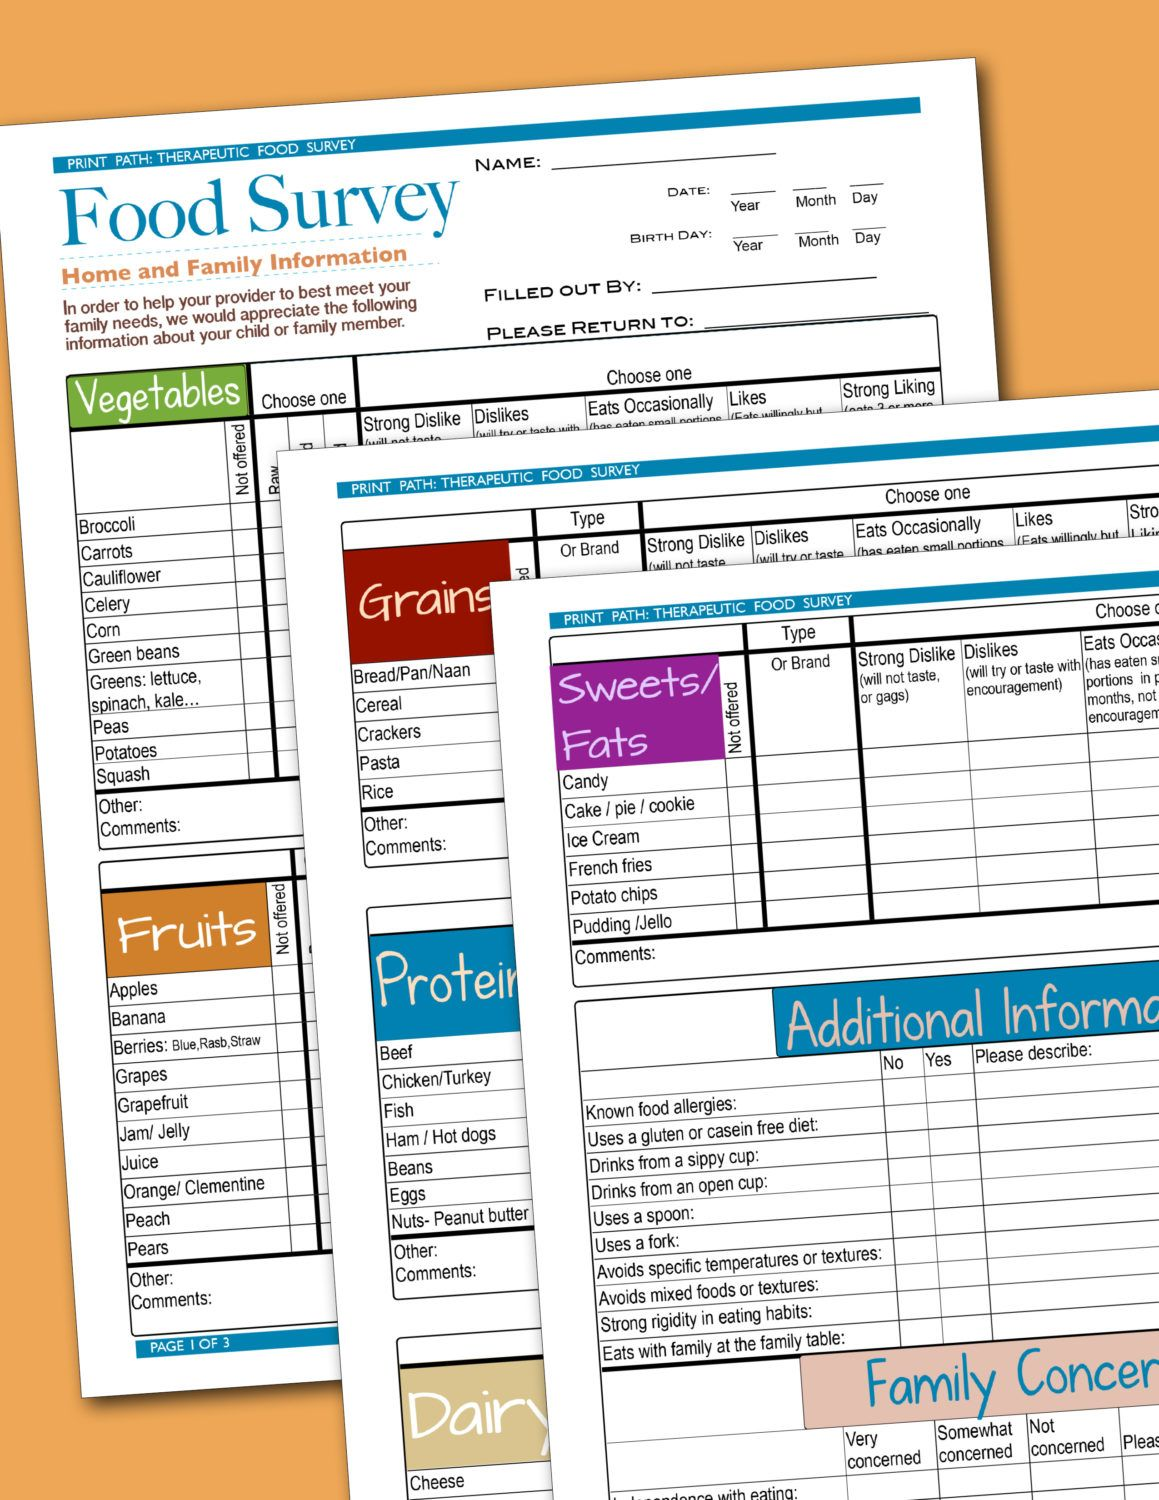 The Utic Food Survey